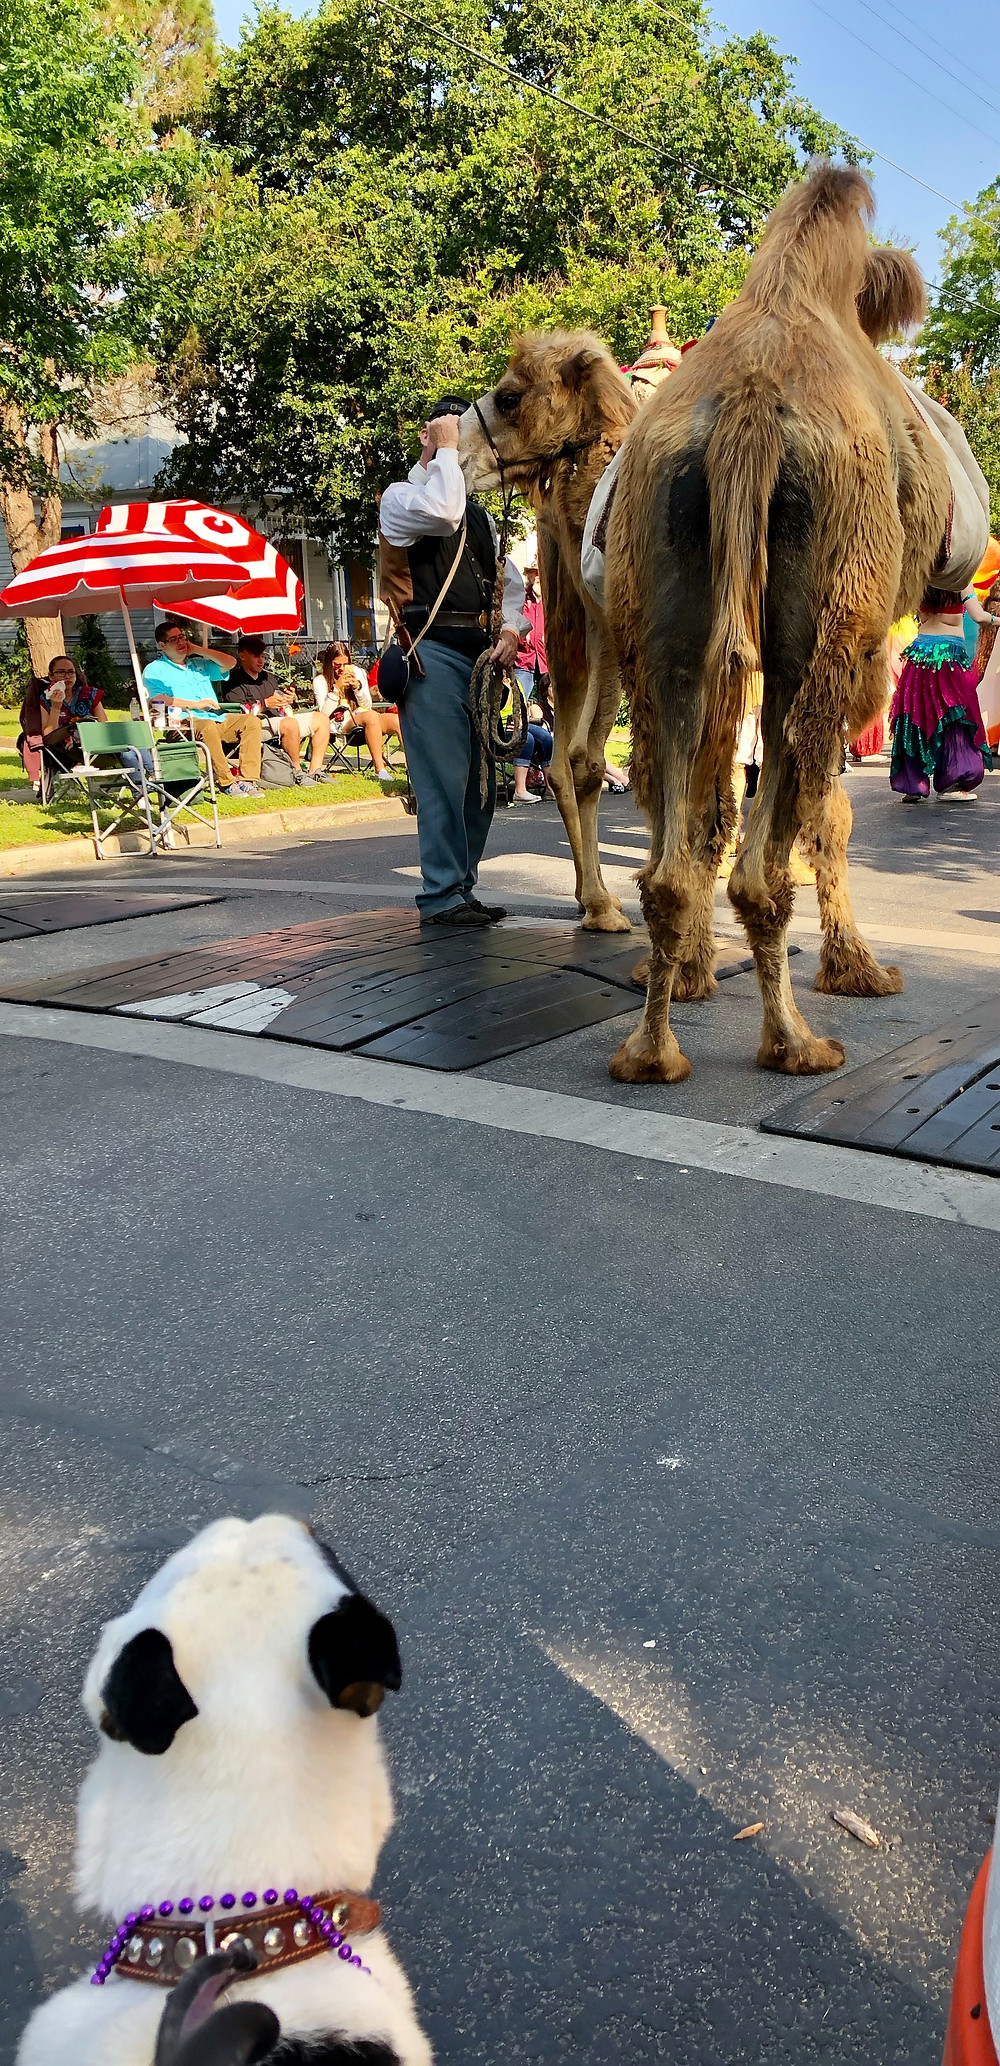 Our pup Micky stares at camels in the parade